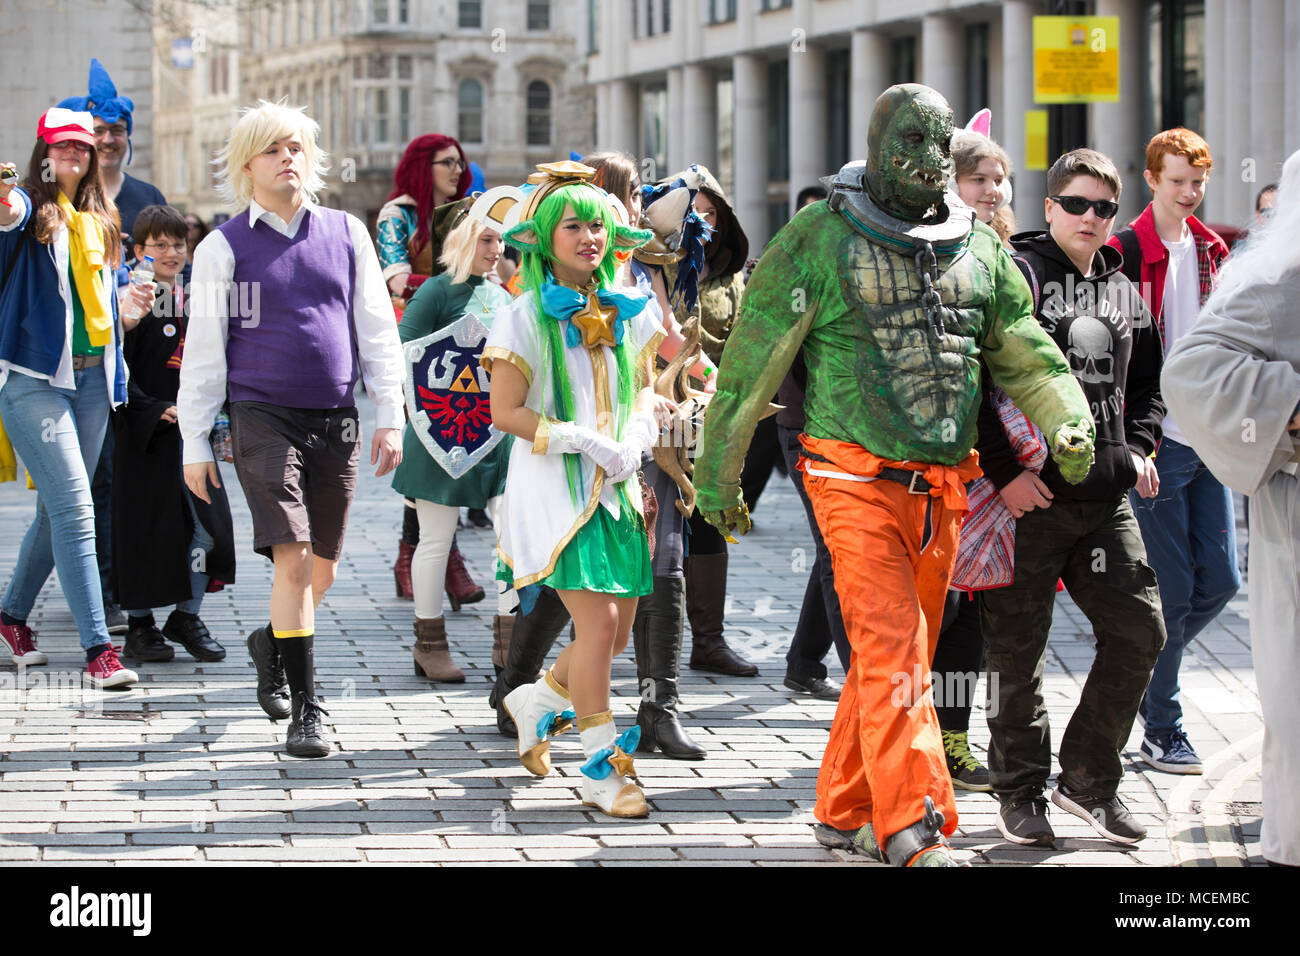 London Games Festival, Video Game Cosplay Character Parade through London. The annual parade features hundreds of video game-inspired characters, UK - Stock Image